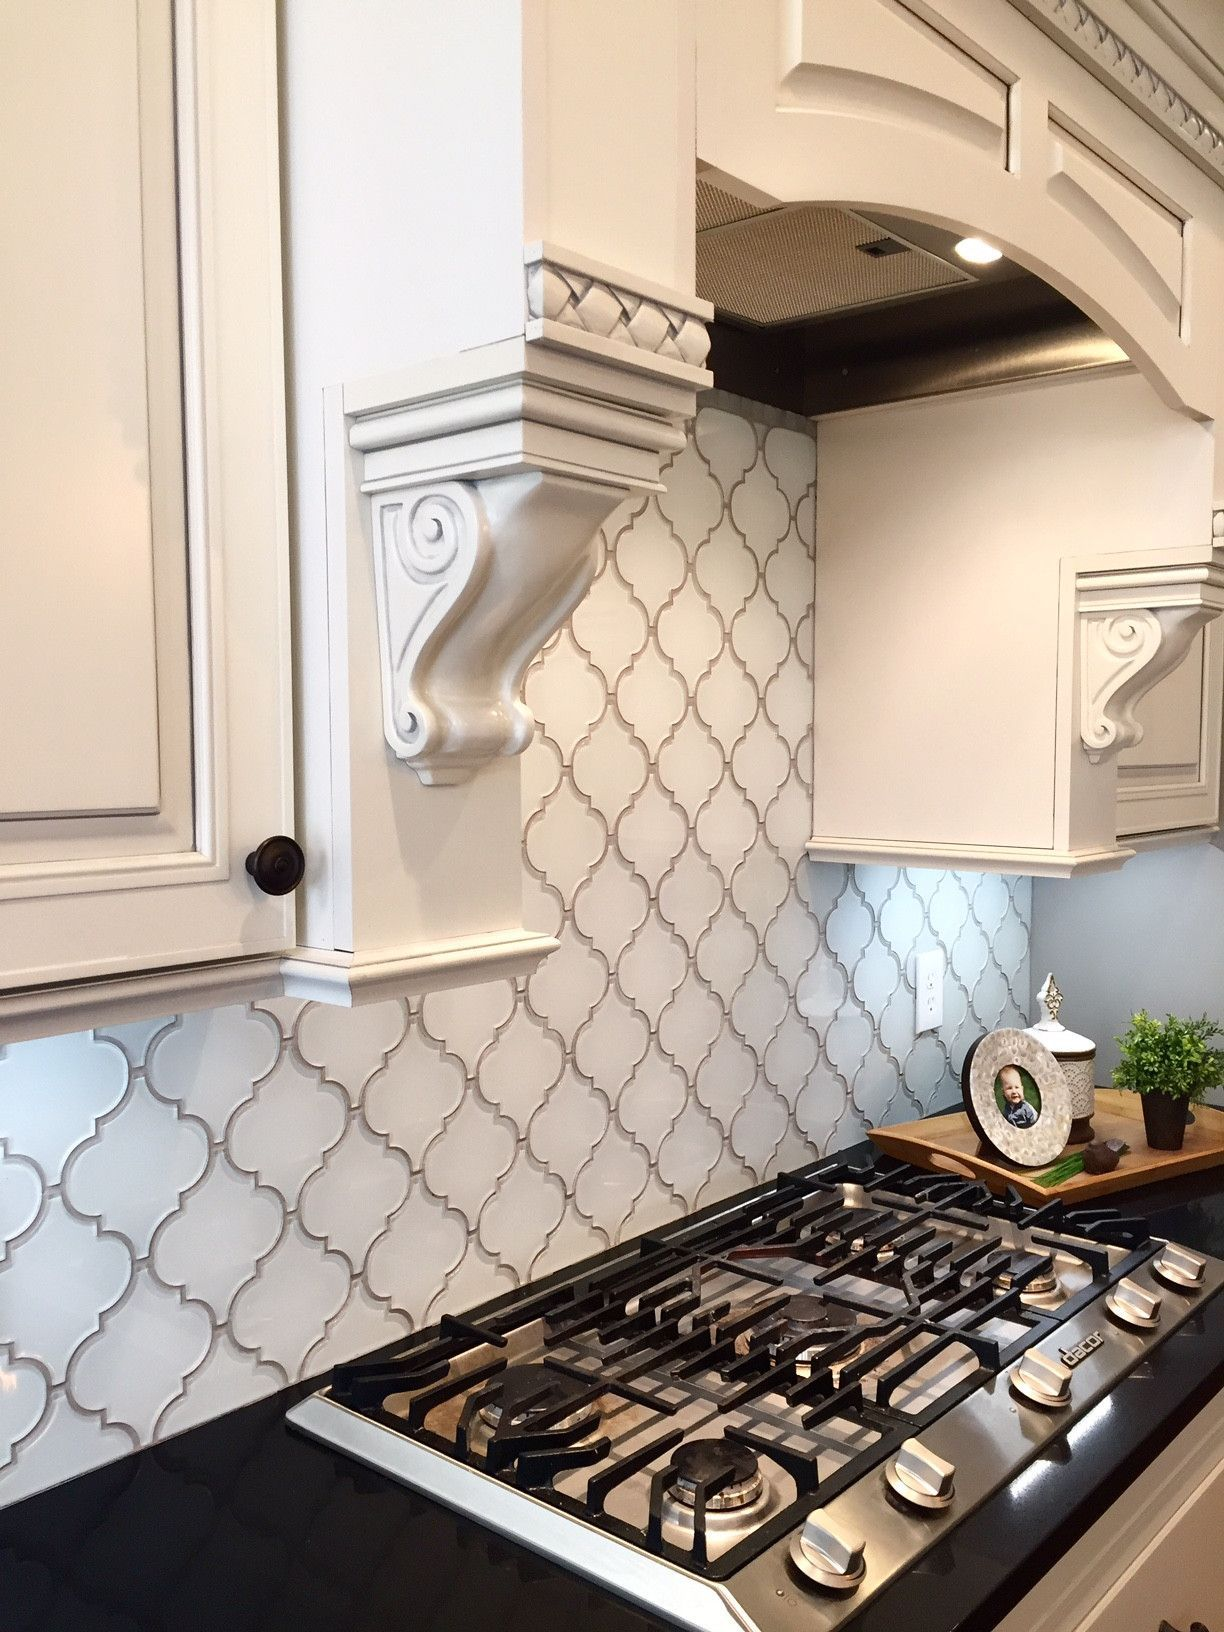 Bring A Touch Of Elegance To Your New New Kitchen Backsplash Or